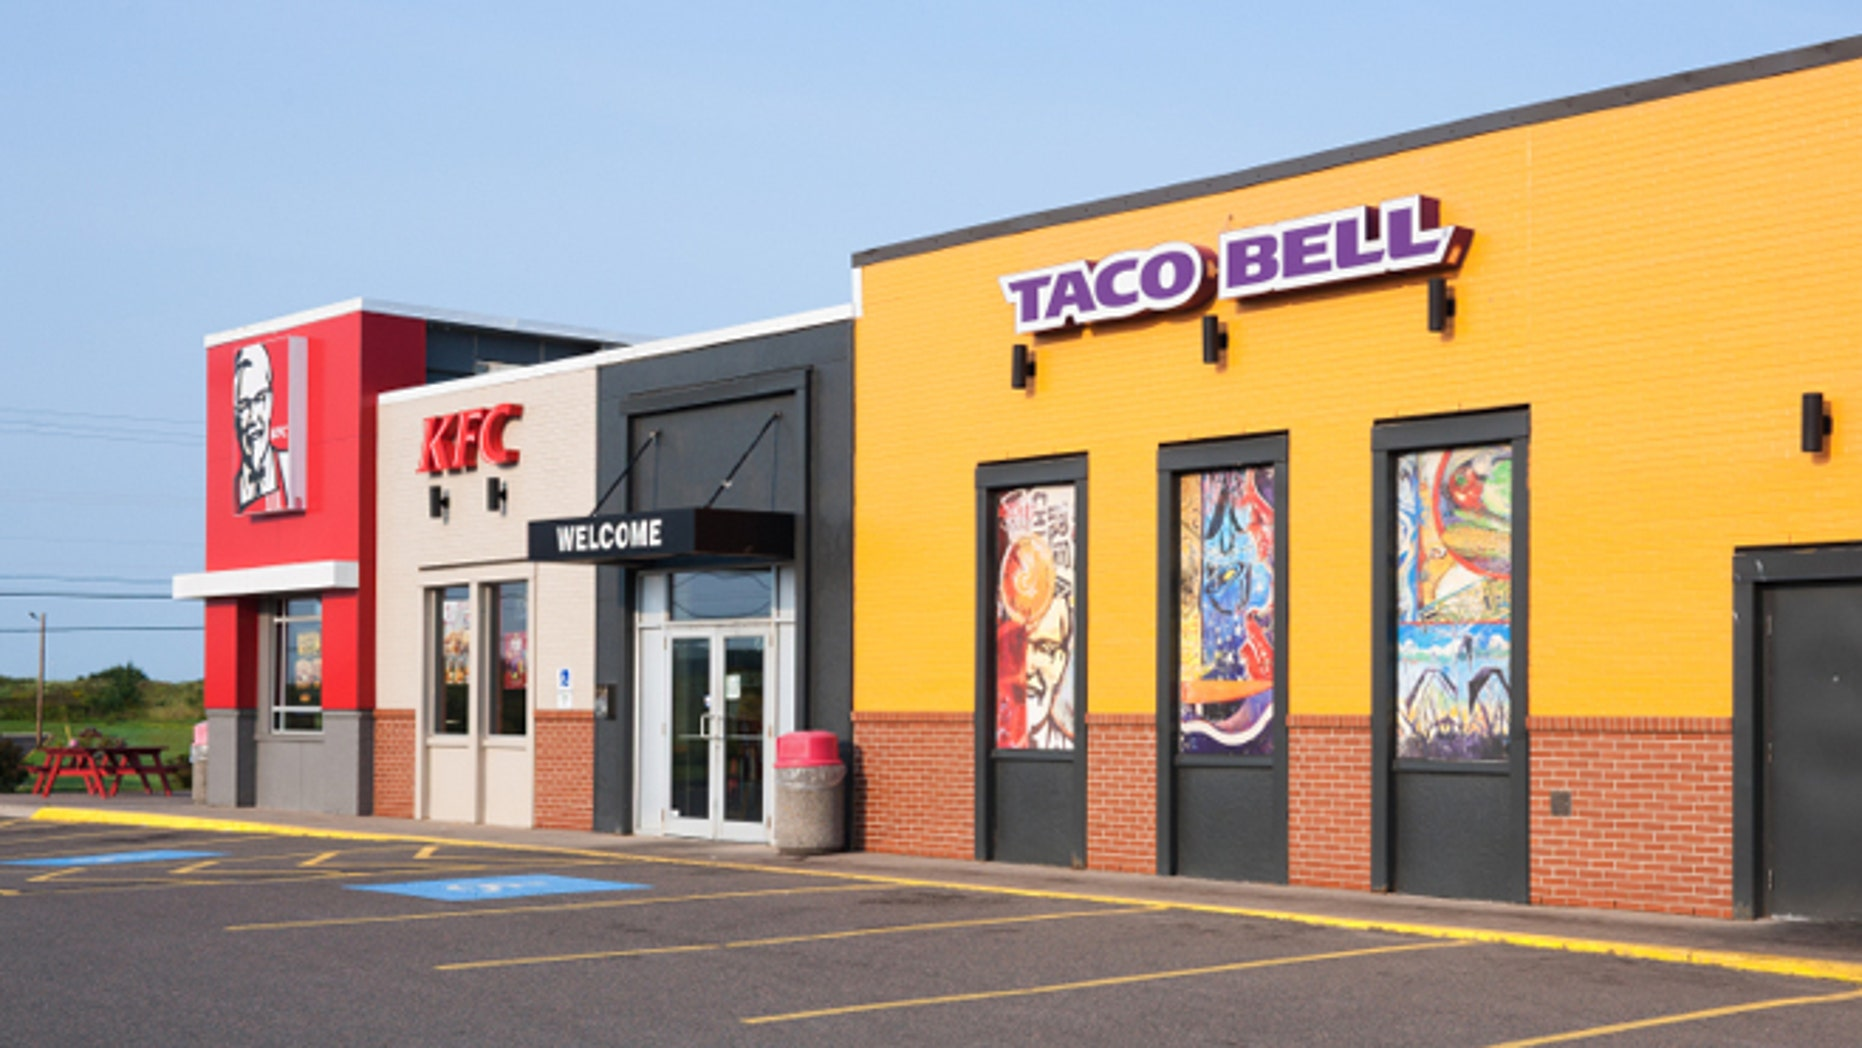 KFC and Taco Bell both received failing grades when it comes to antibiotic use in their meat supply.